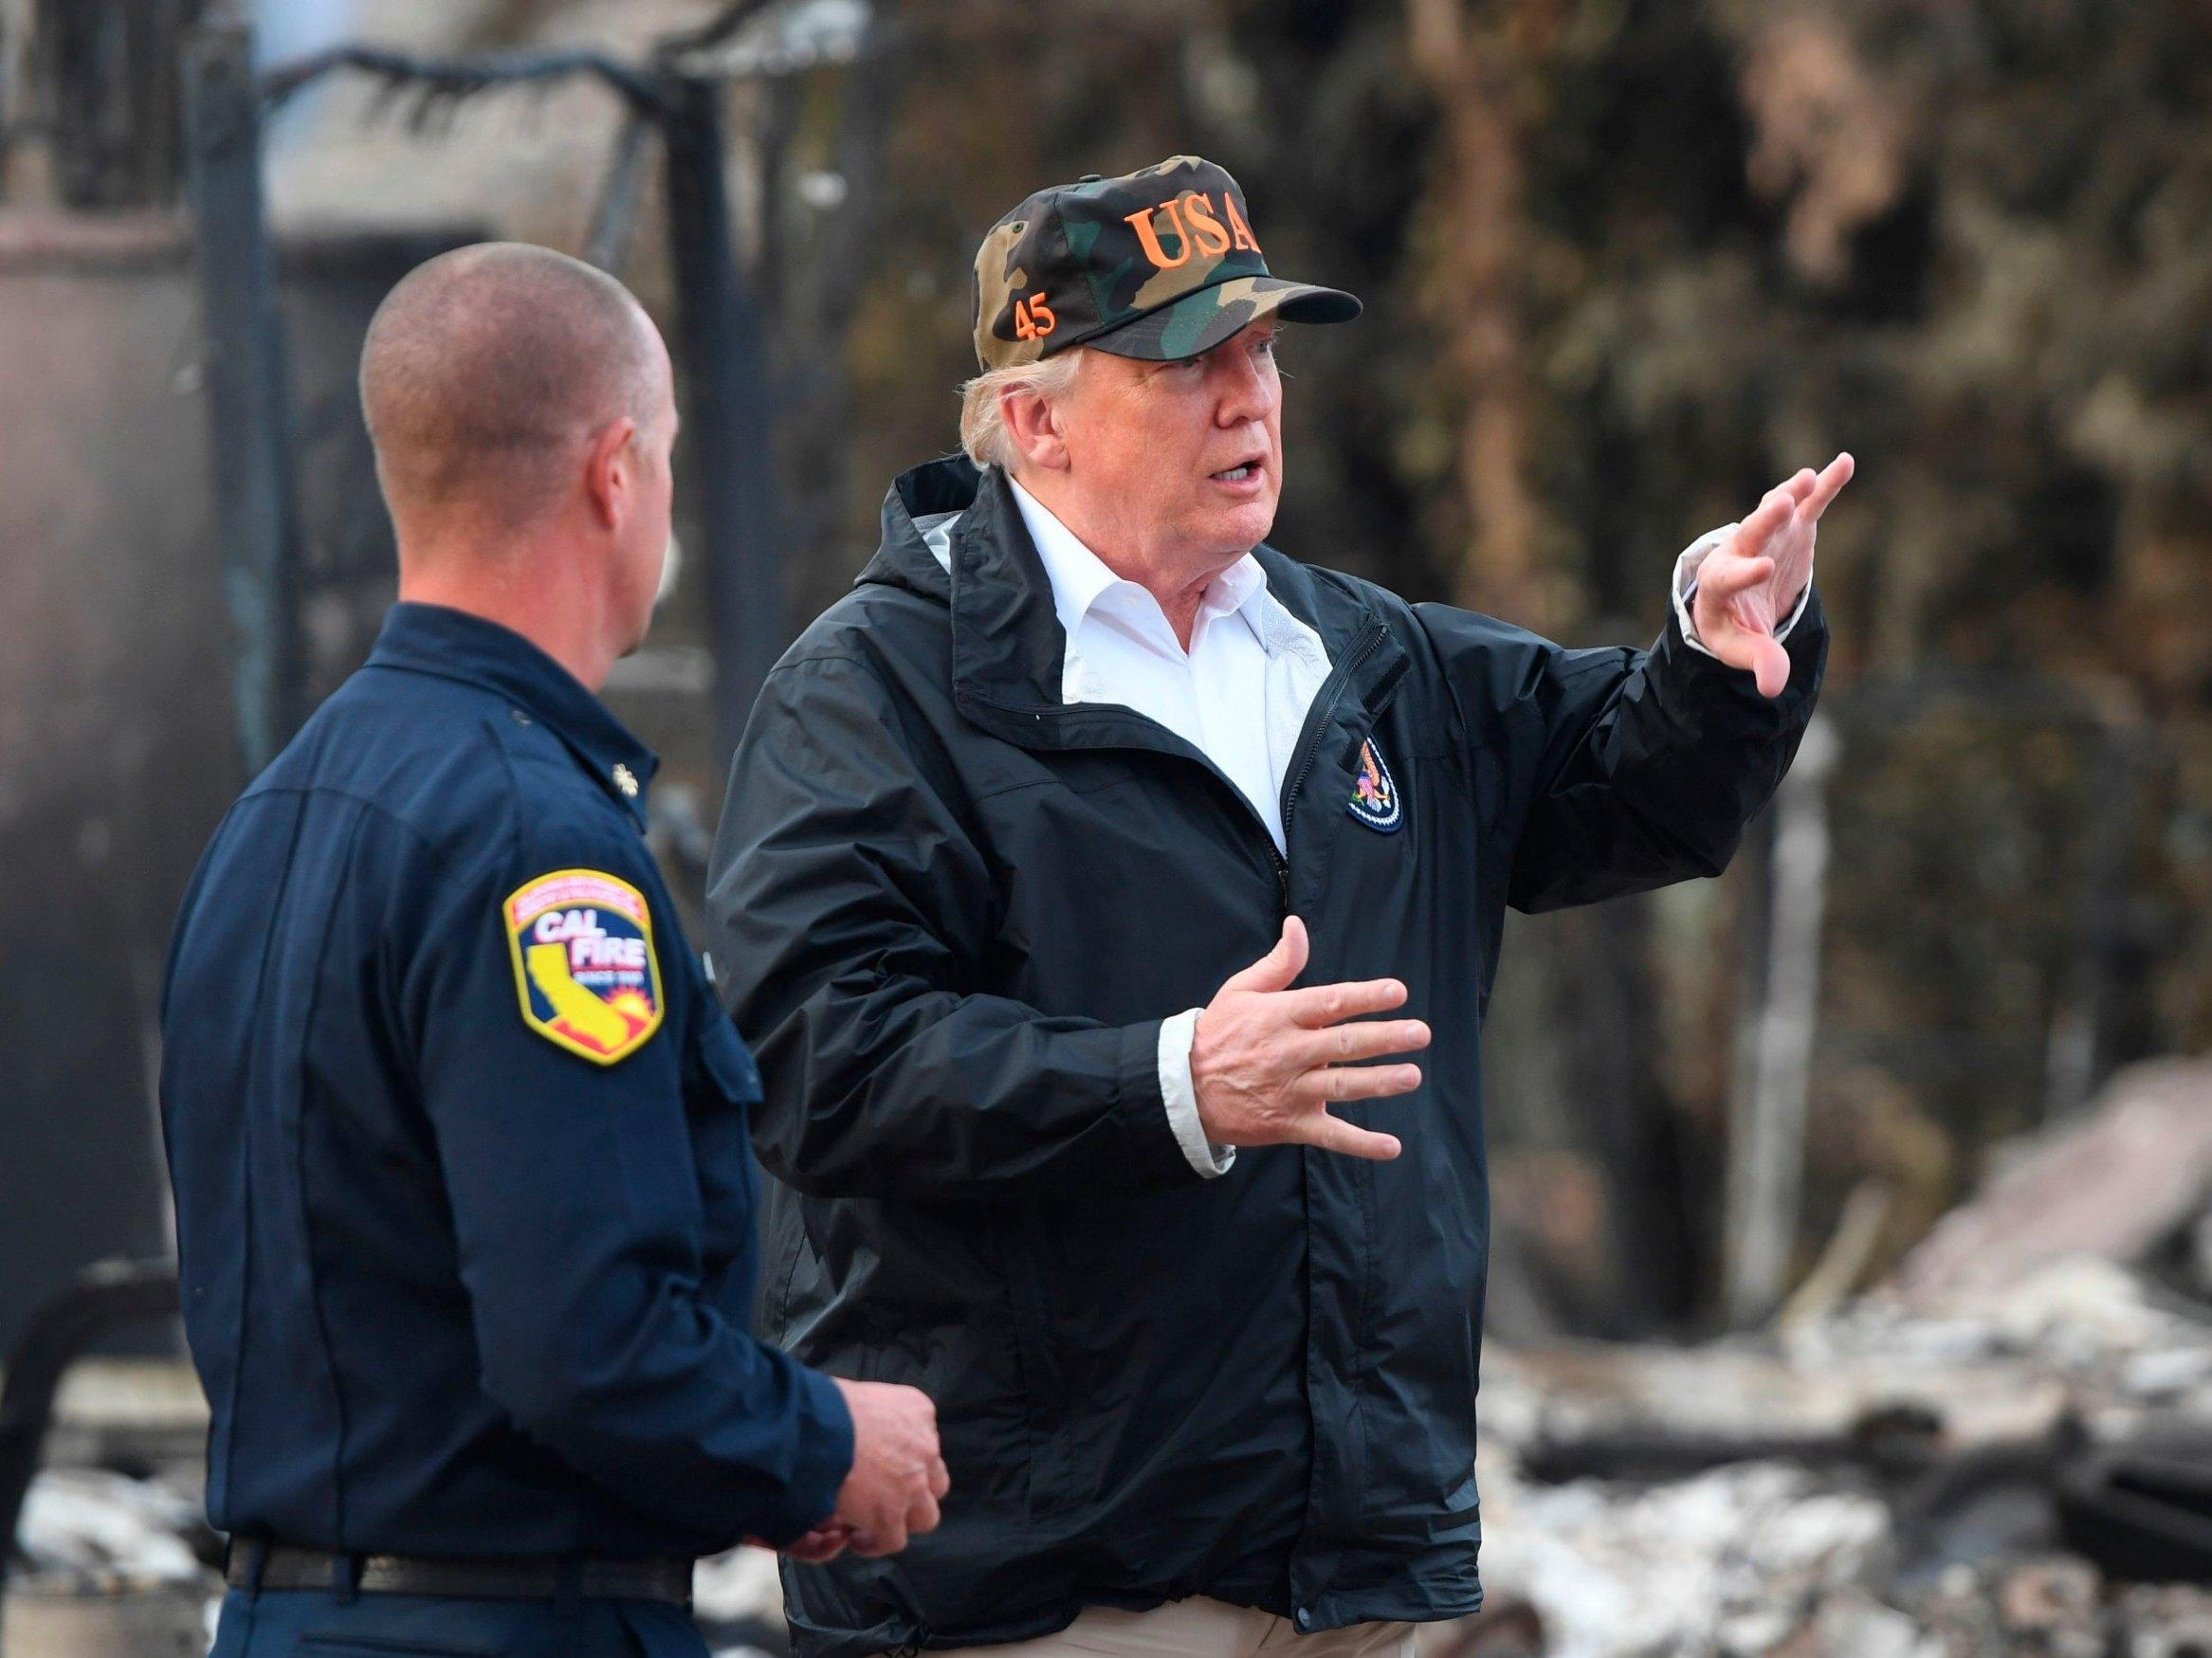 Trump leaves Finland bewildered by claiming country stops wildfires by 'raking and cleaning'